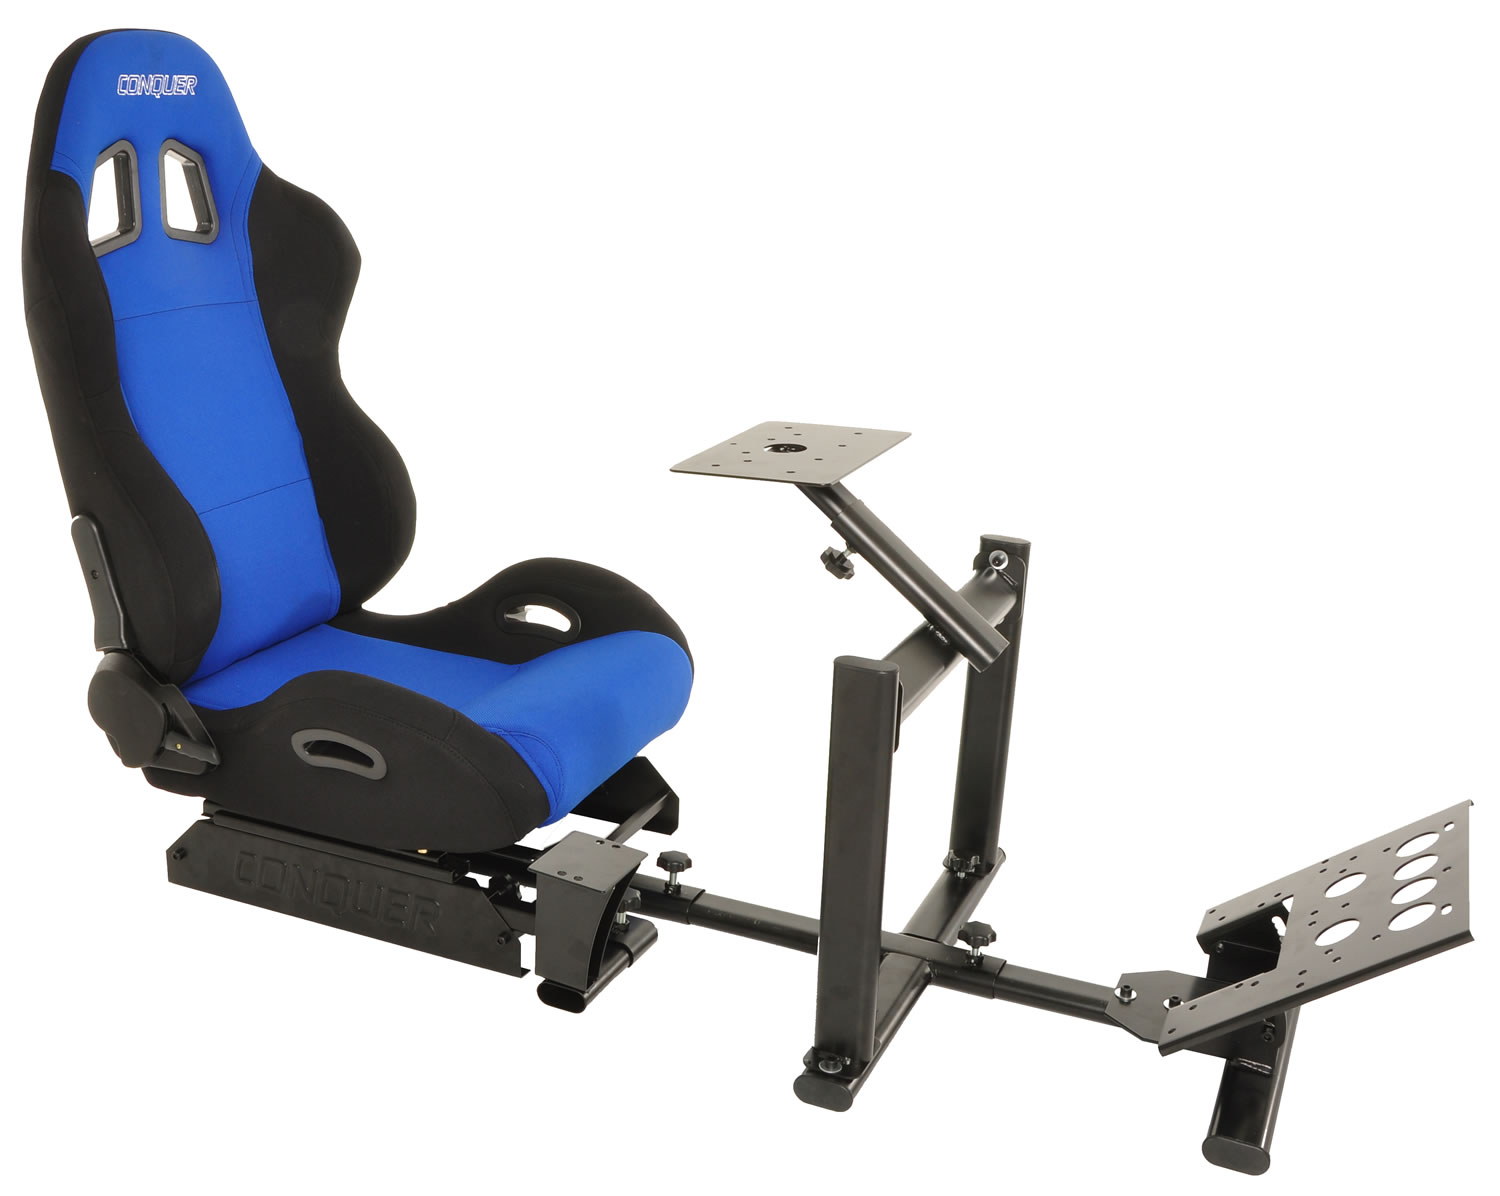 Conquer-Racing-Simulator-Cockpit-Driving-Seat-Reclinable-with-Gear-Shifter-Mount